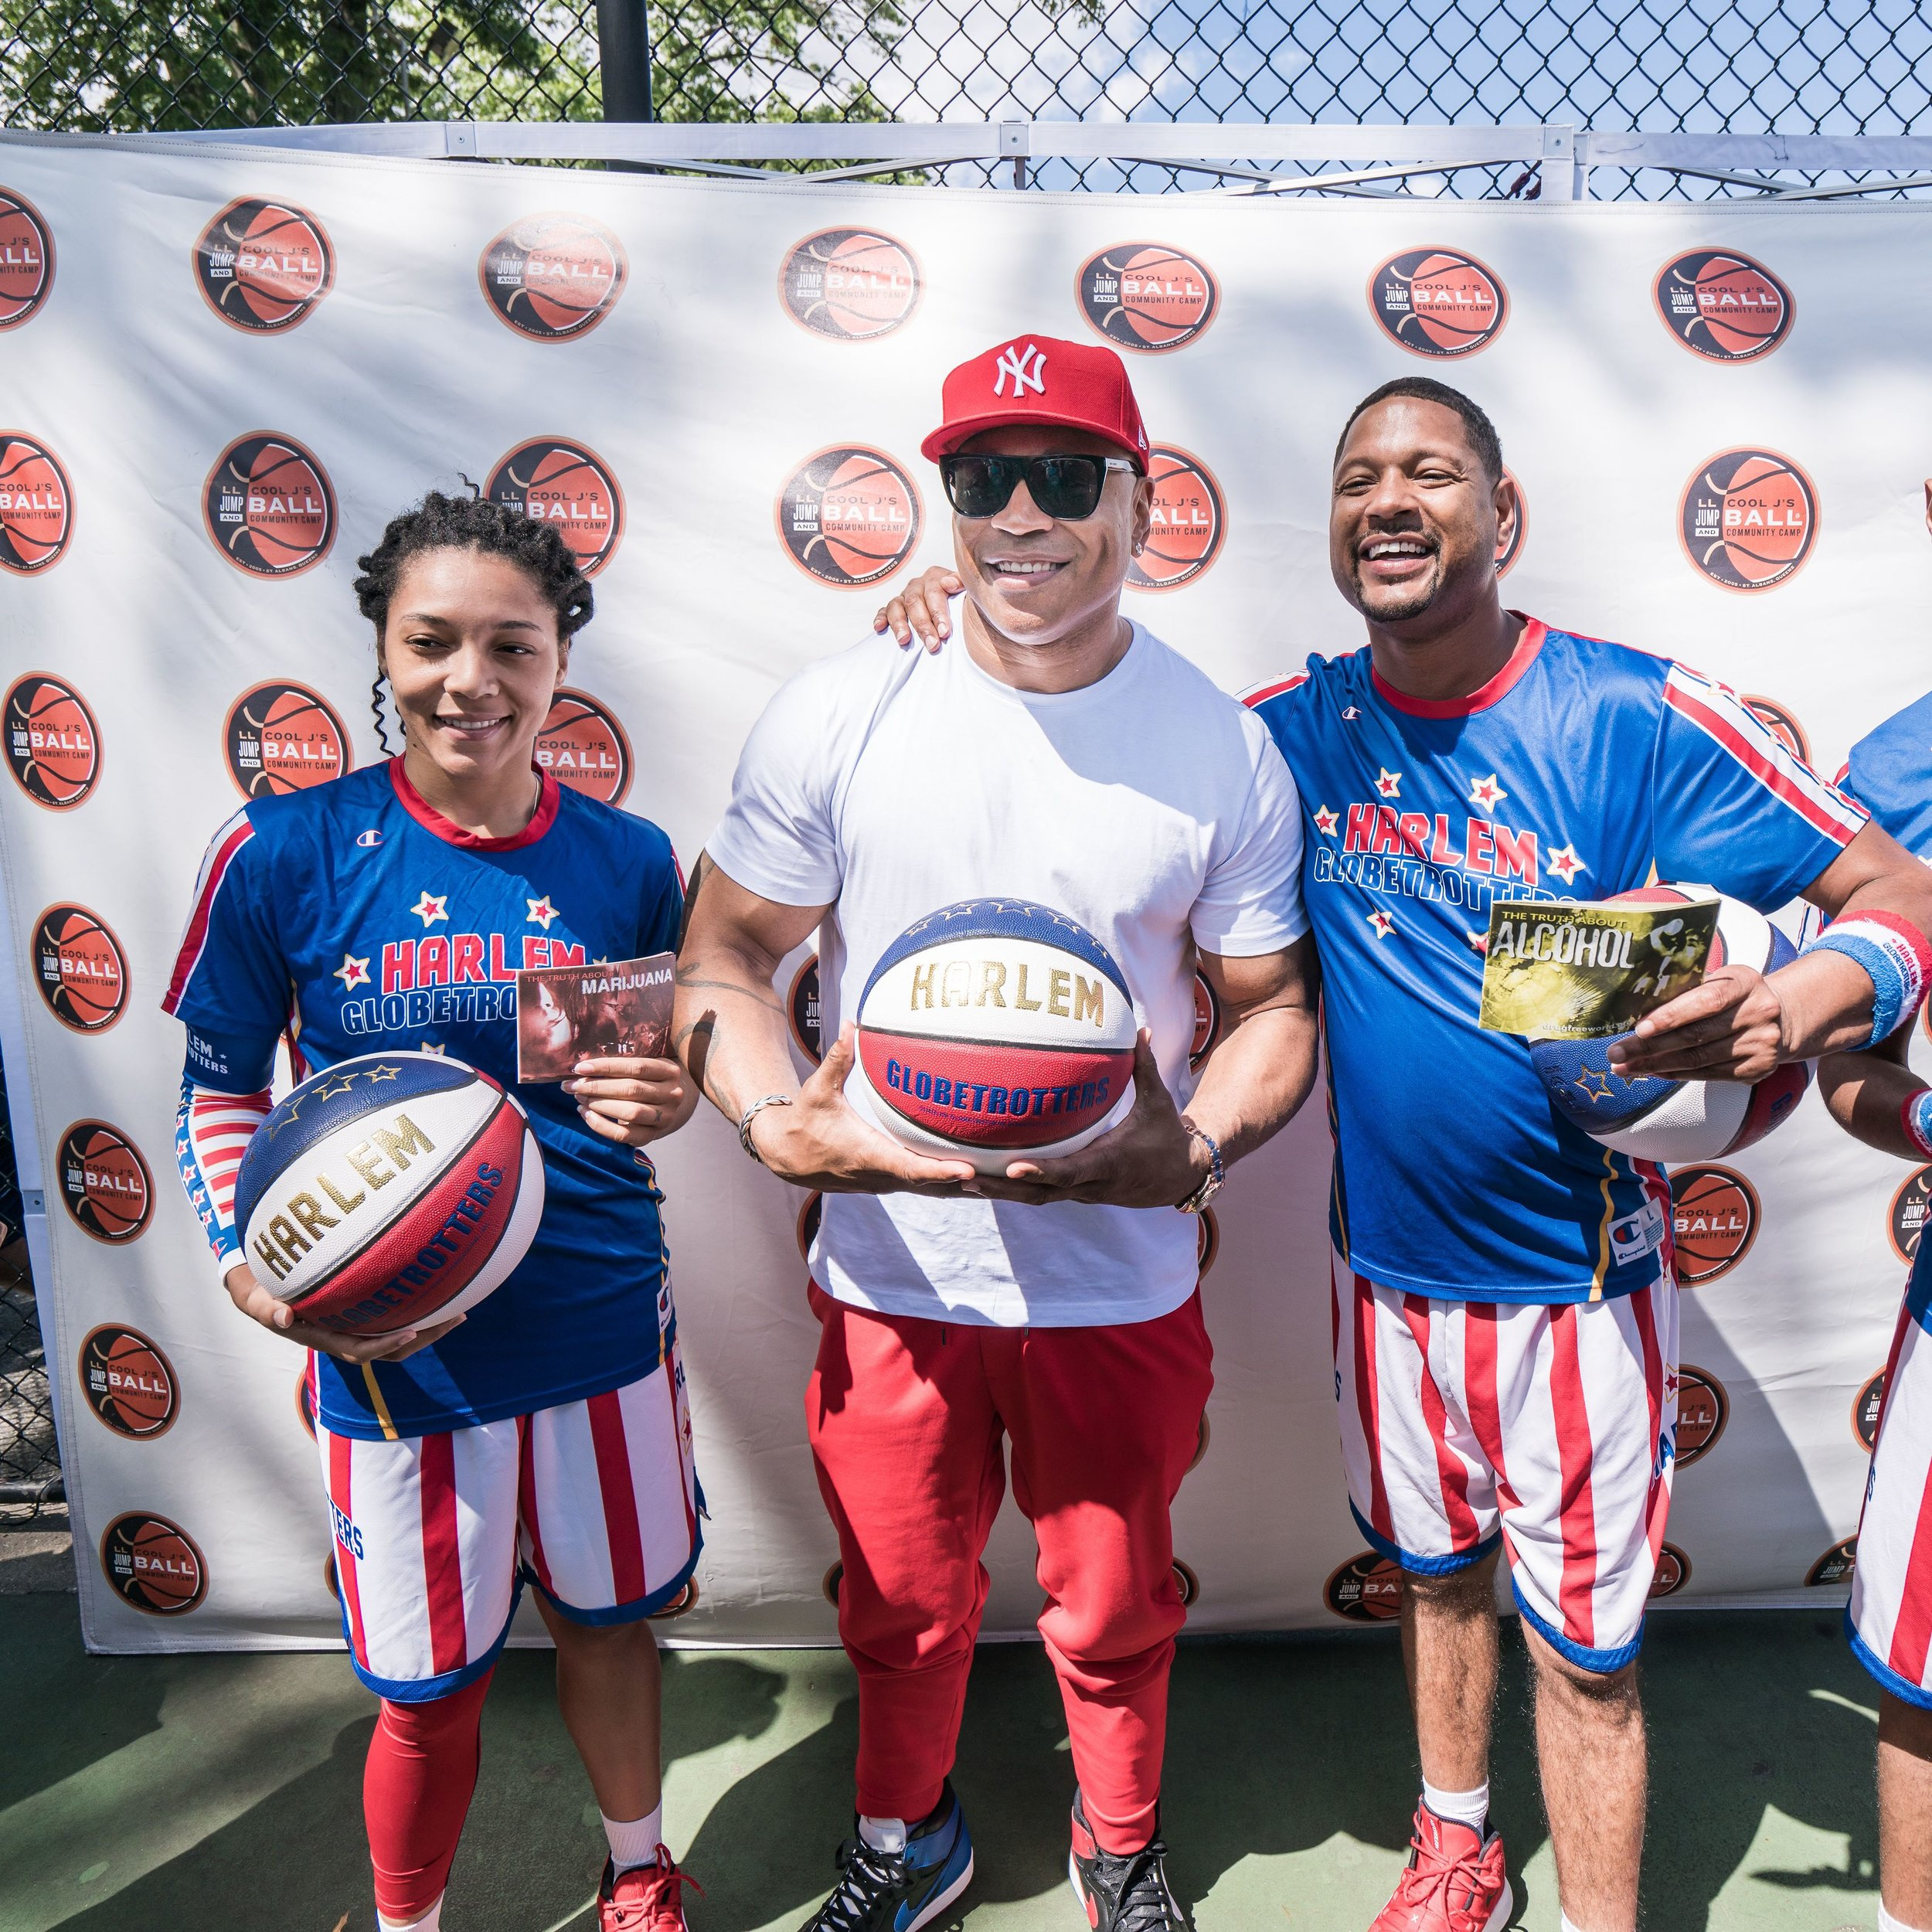 LL Cool J palled around with the Harlem Globetrotters at his charity event last weekend. Photo by Austin Donohue.